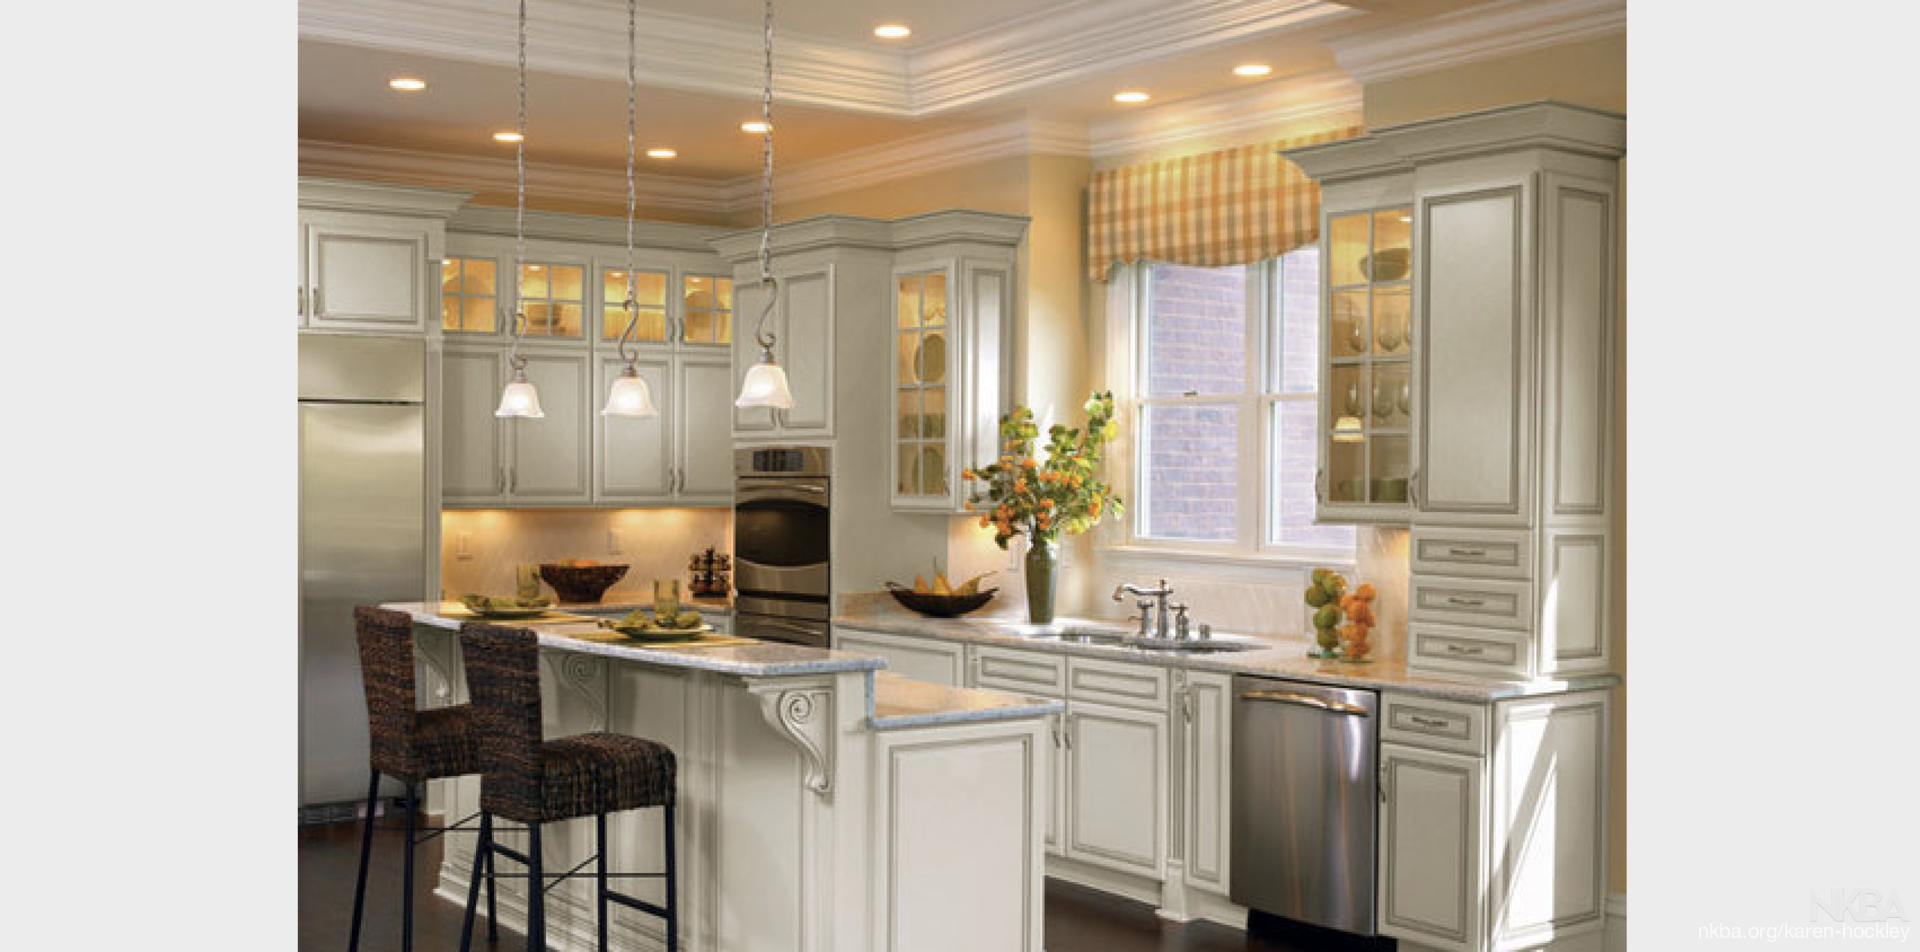 Pristine White Cabinets With Yellow Accents Nkba